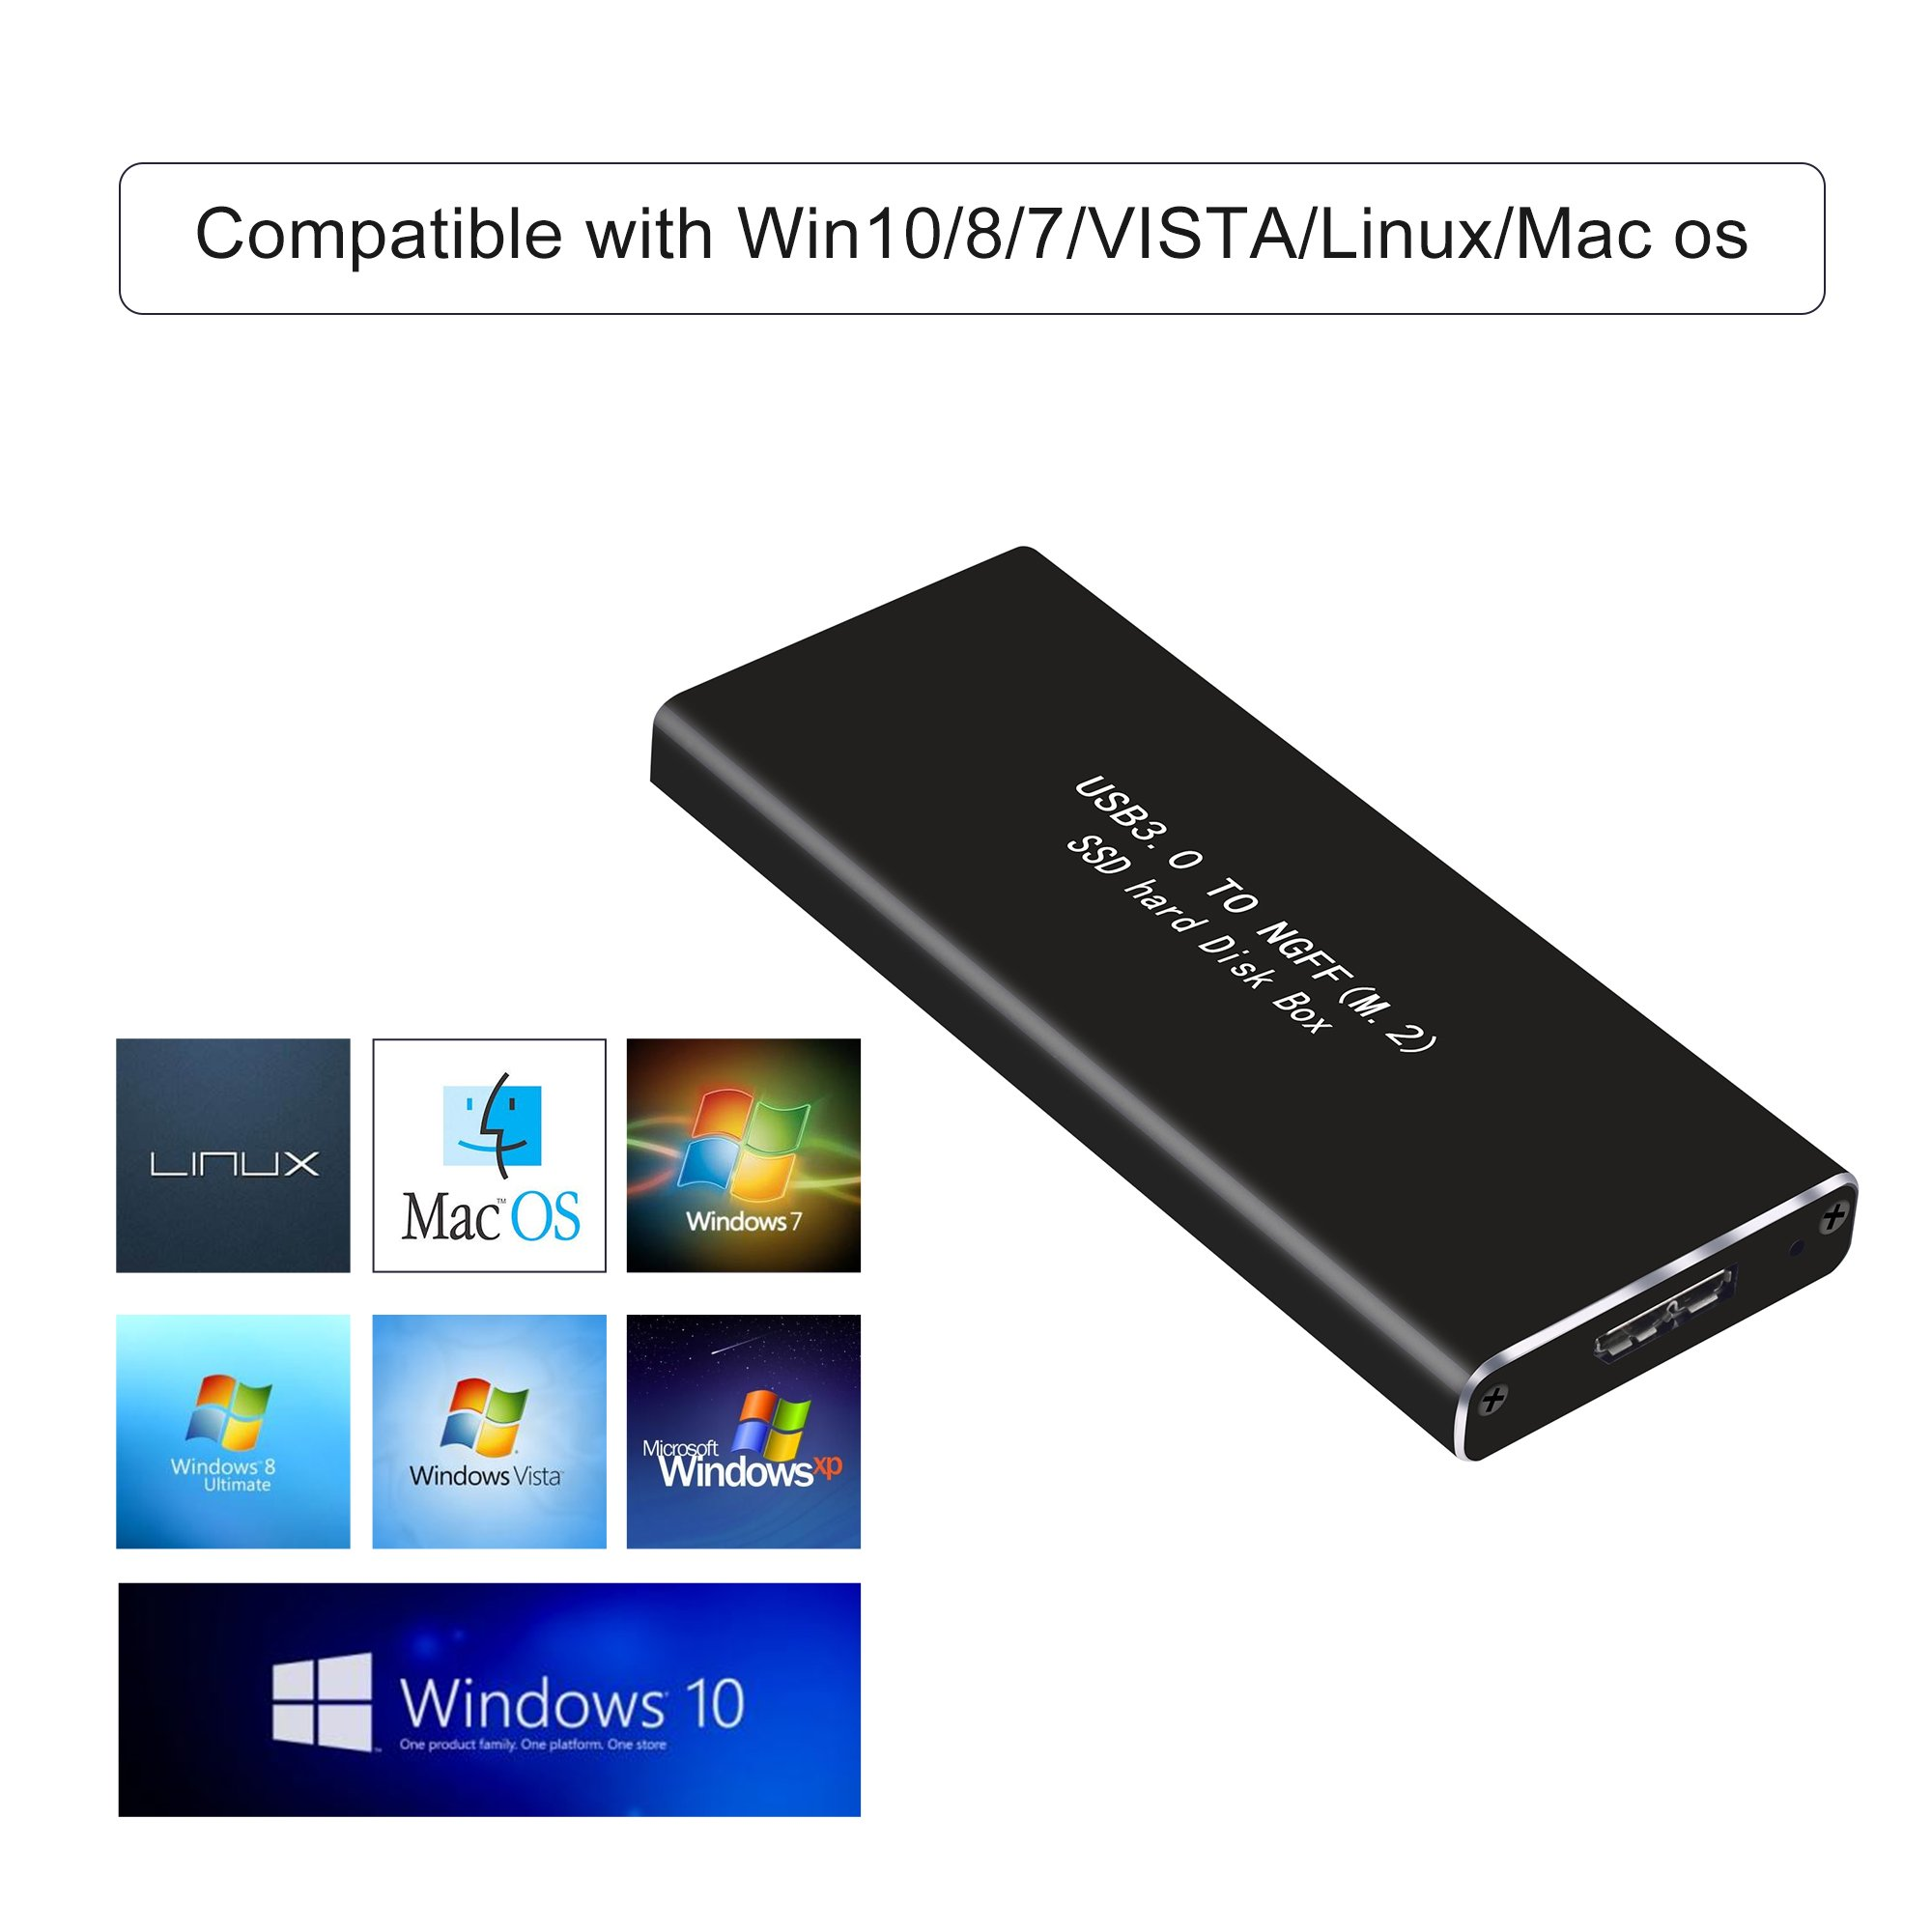 M.2 SSD to USB 3.0 External Enclosure 6Gbps UASP, Hard Drive Disk HDD Housing Portable Case Support NGFF M.2 SATA-based B Key/B+M Key Driver 2230 2242 2260 2280 by Mveohos (Image #7)